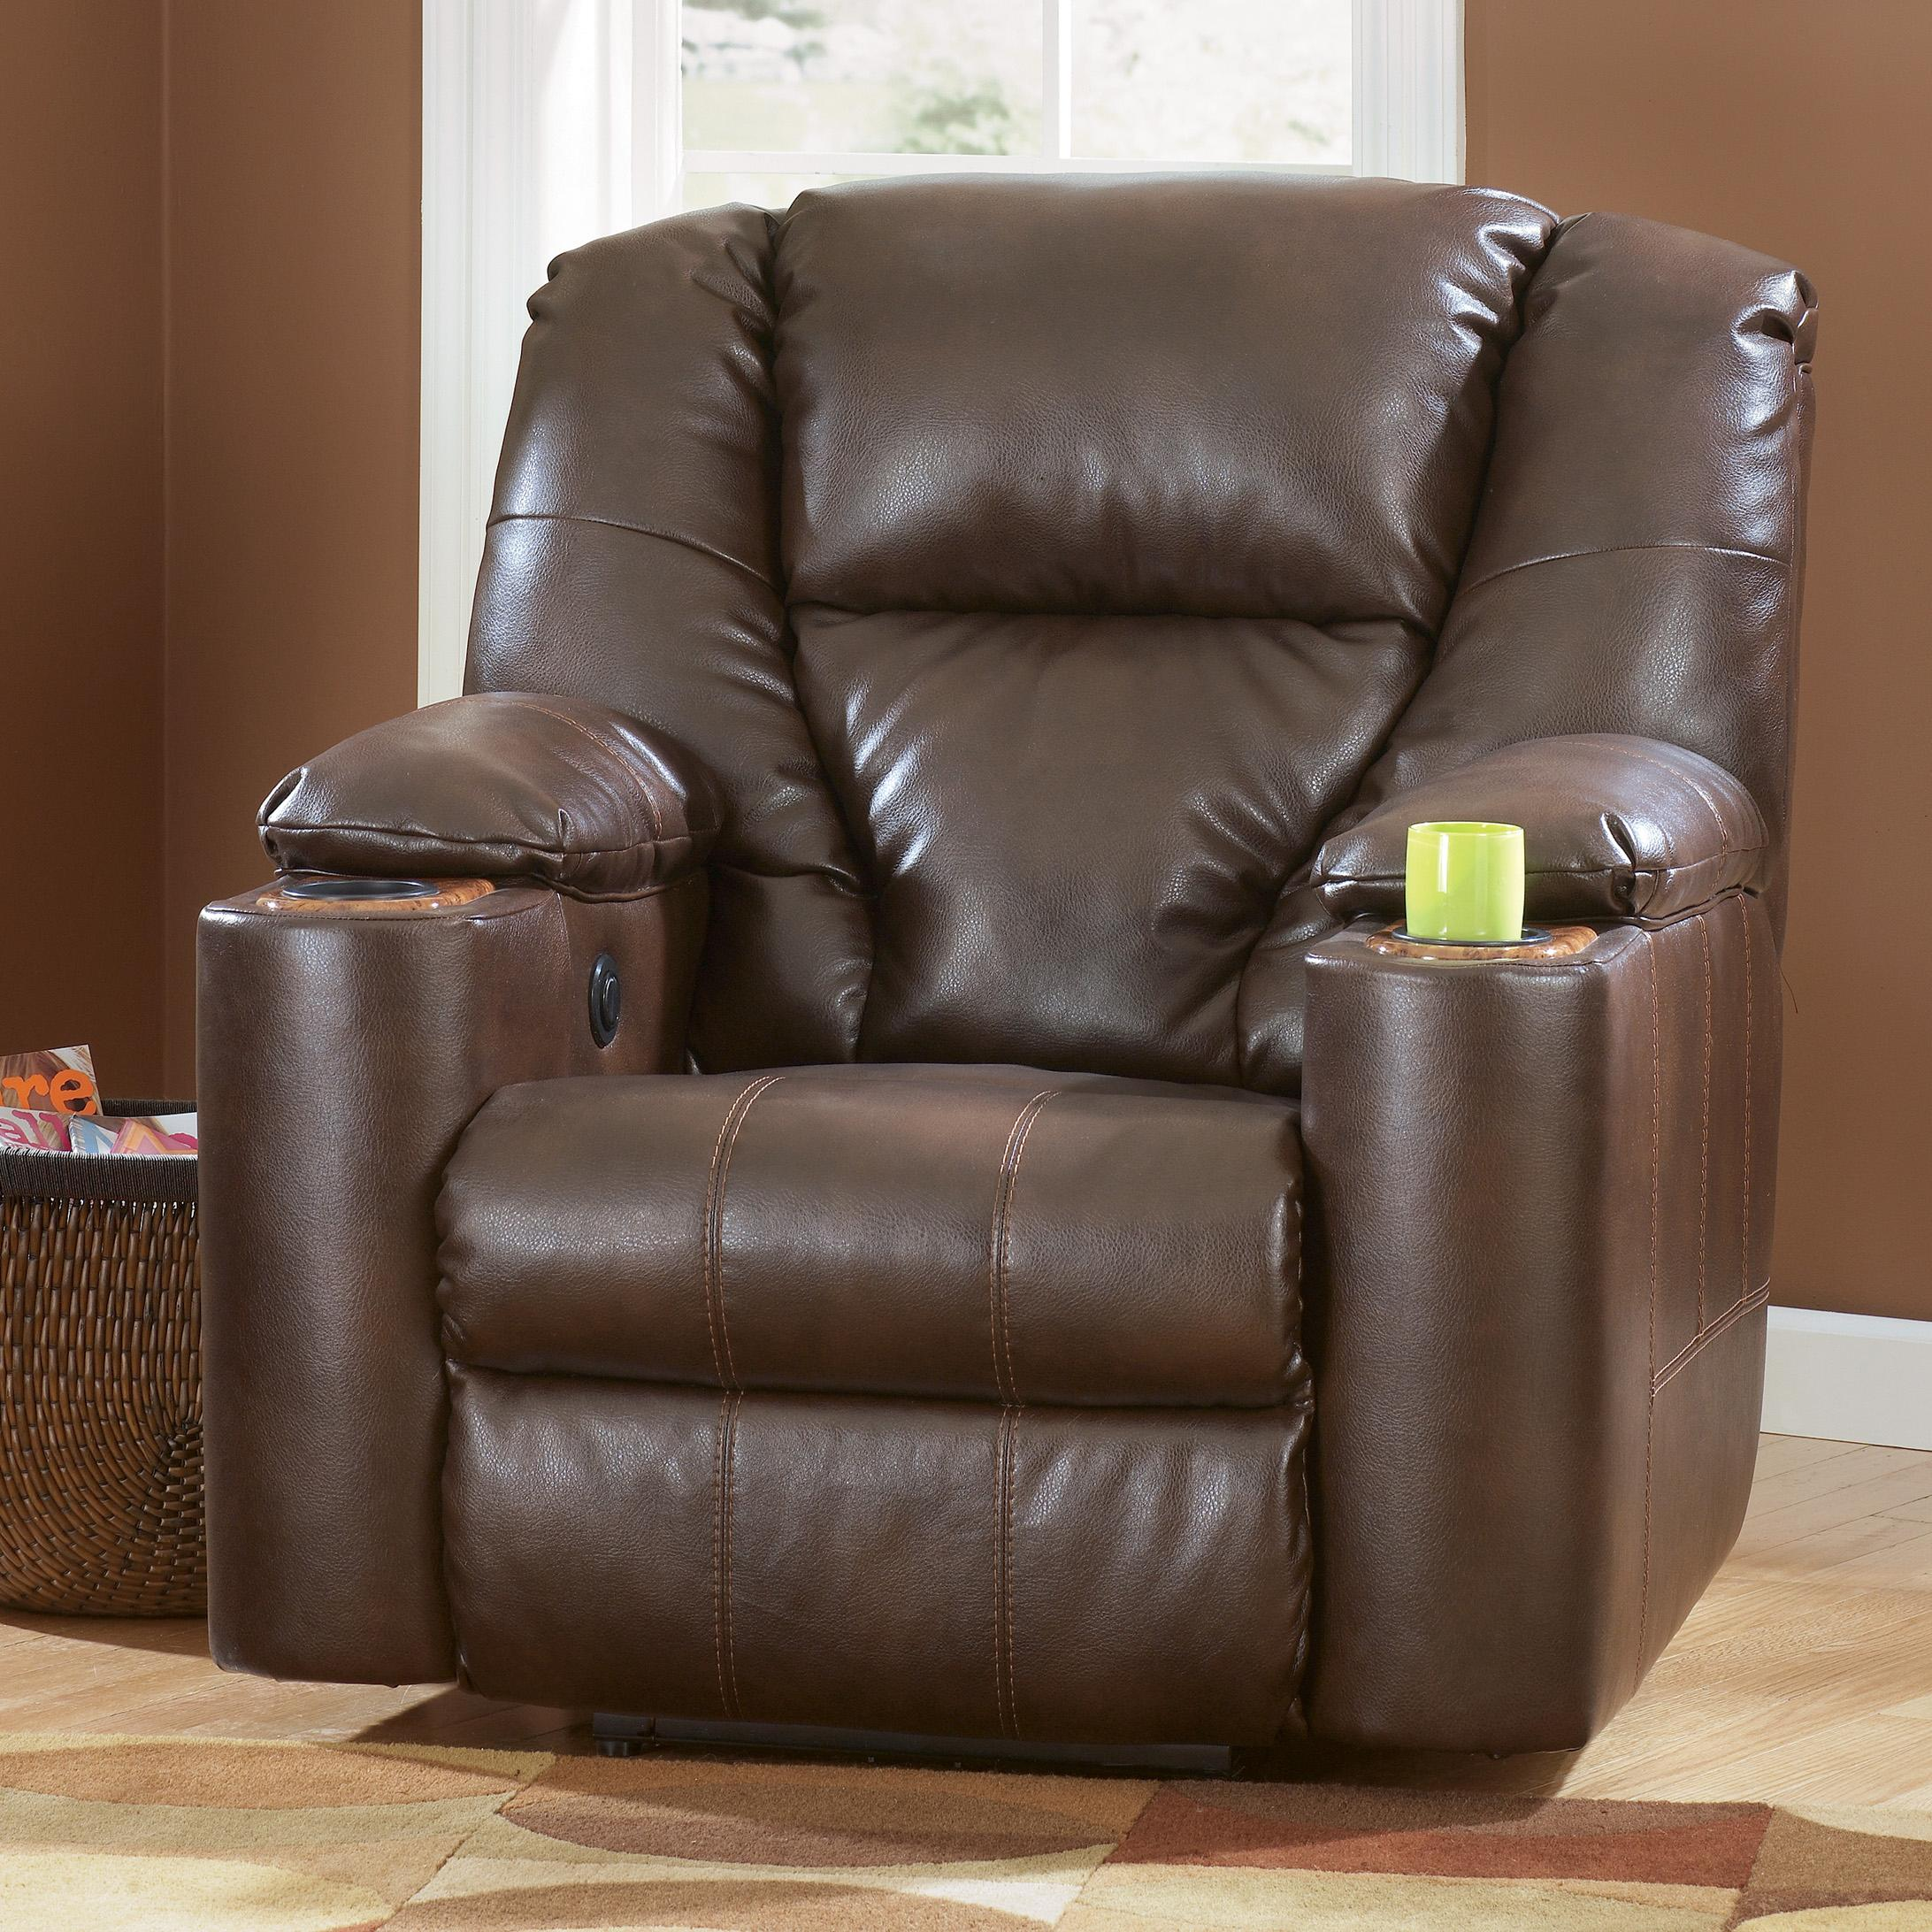 Signature Design by Ashley Paramount DuraBlend® - Brindle Power Recliner - Item Number: 7640106